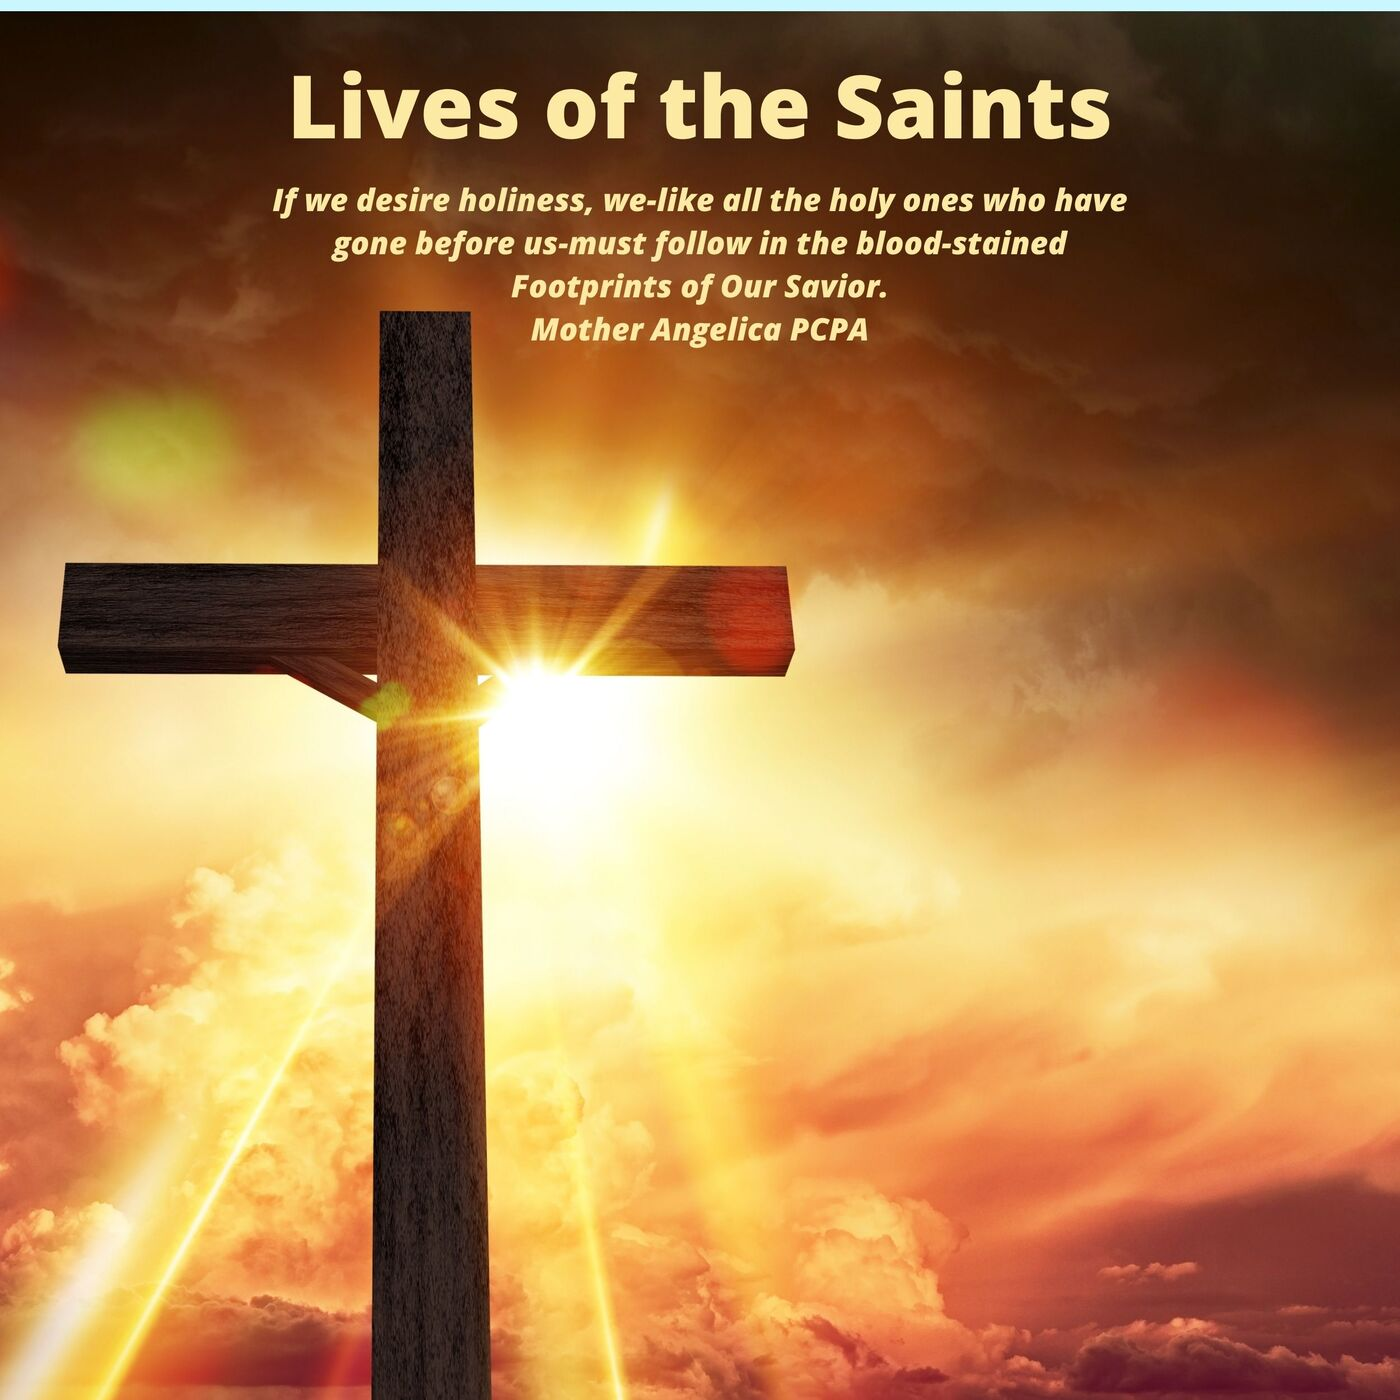 The Lives of the Saints and Suffering